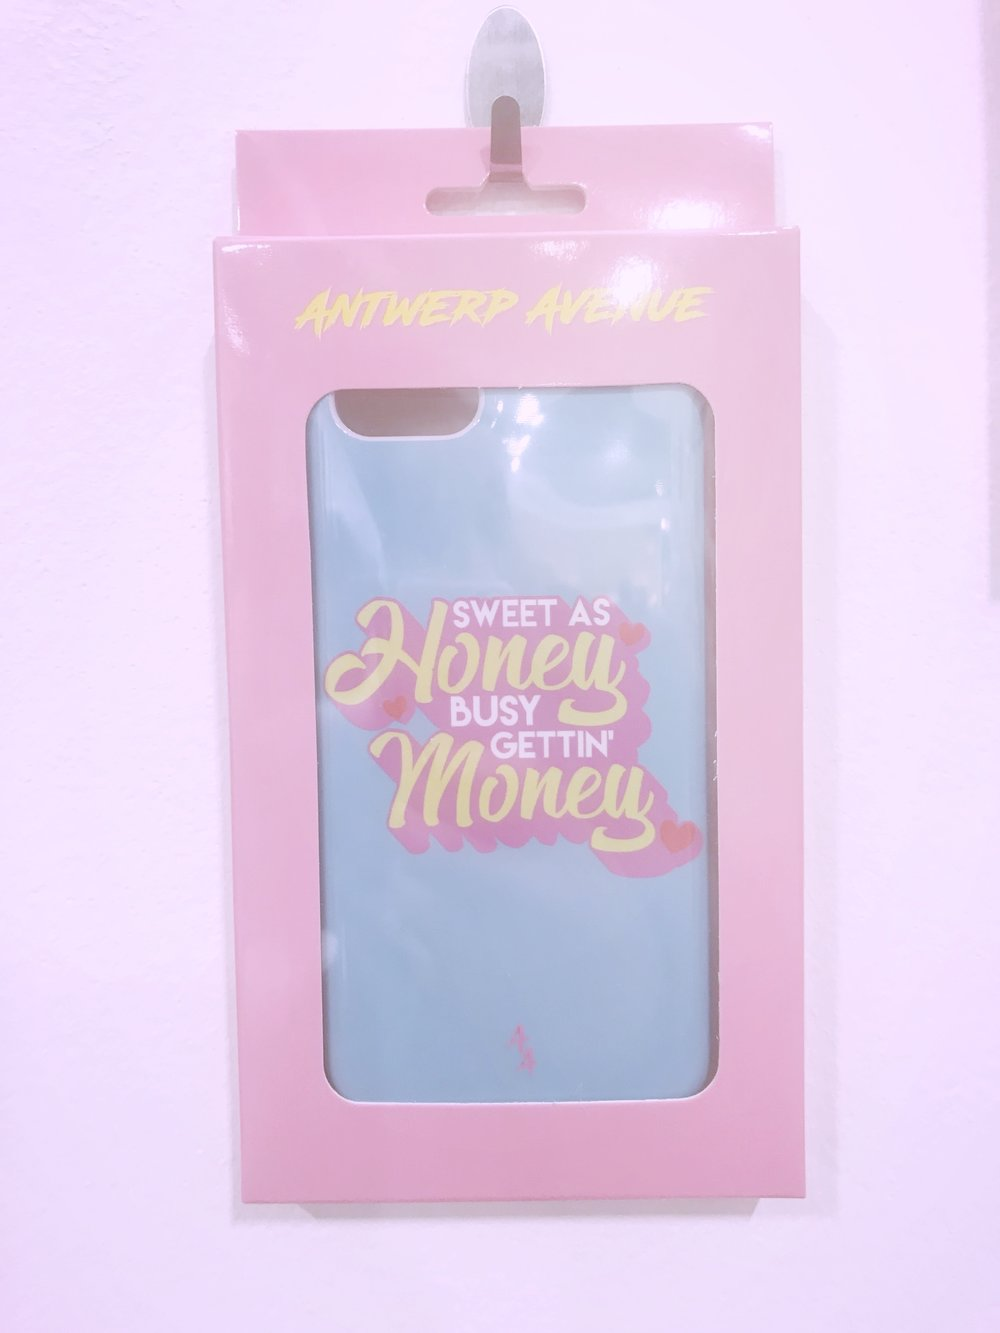 This bad boy phone case is from the Money Moves collection